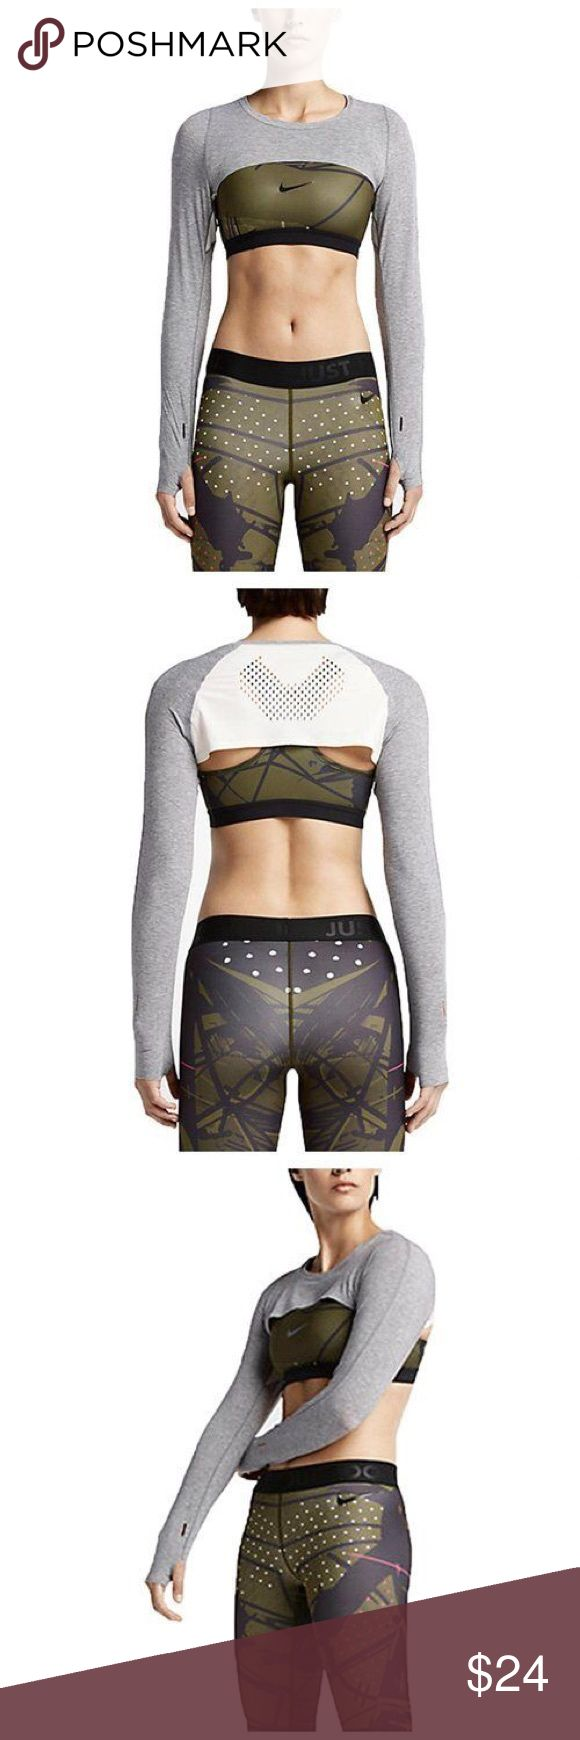 Nike Lab x JFS Laser Cut Shrug Crop Top One of my favorite Nike Lab collaborations. Every detail in the collection is designed with purpose and performance in mind. Schneider relied on Nike's expertise with innovation applications in the placement of laser-cut patterns for breathability and the use of lightweight bonded finishes.  This cropped grey shrug has thumbholes and would look great layered. Nike Tops Crop Tops